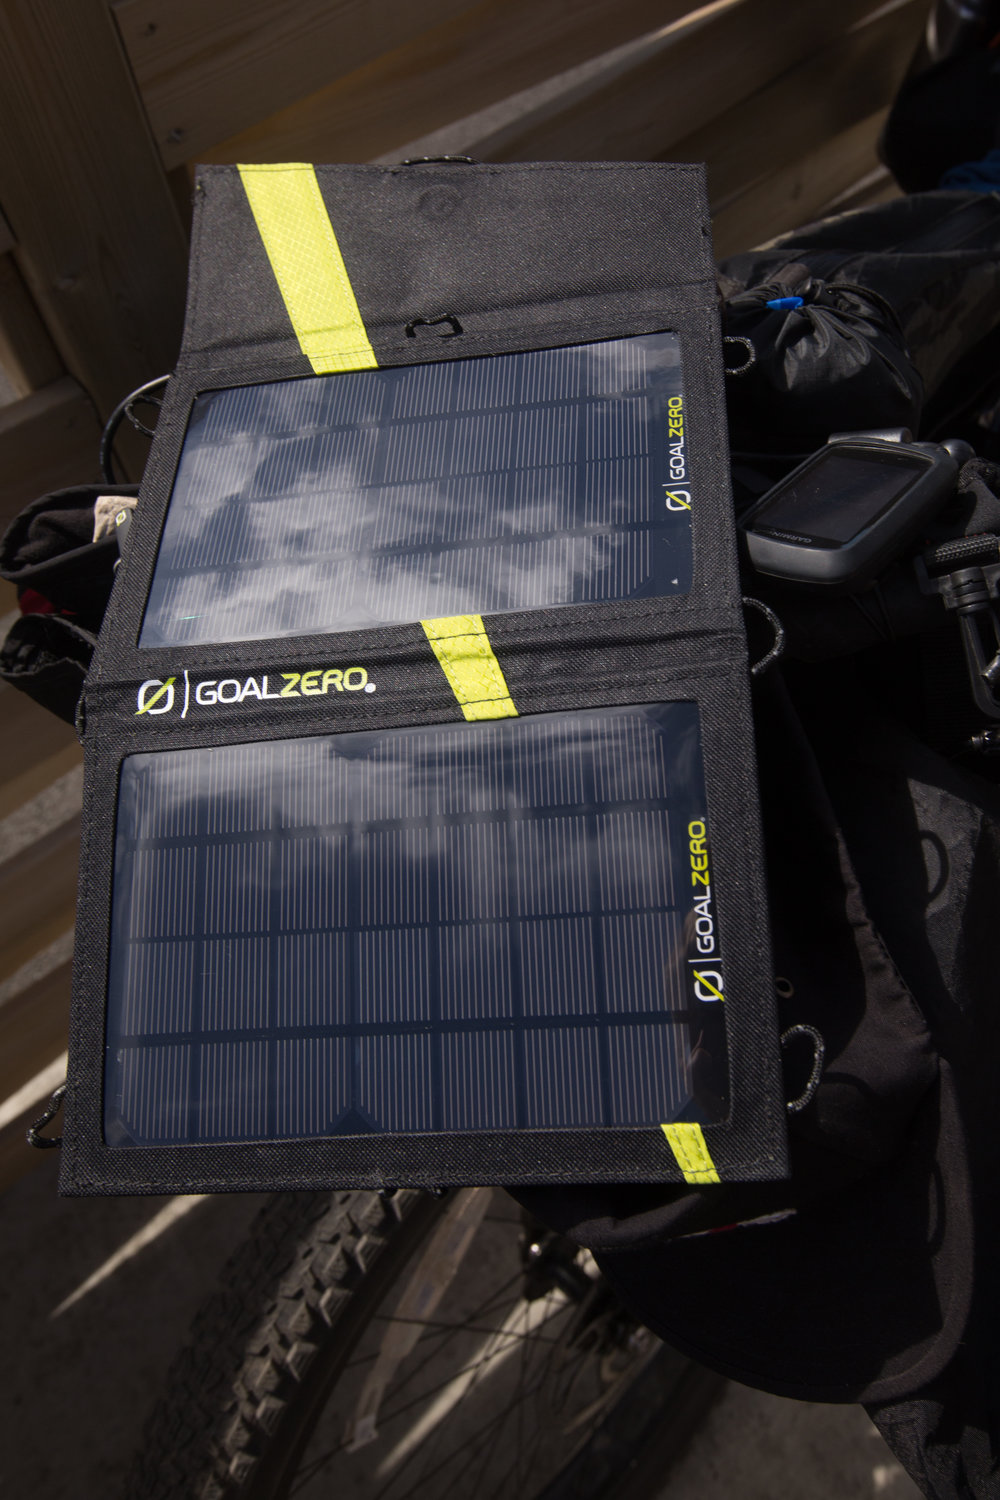 Goal Zero   have a proven track record of providing reliable solar power in the field.